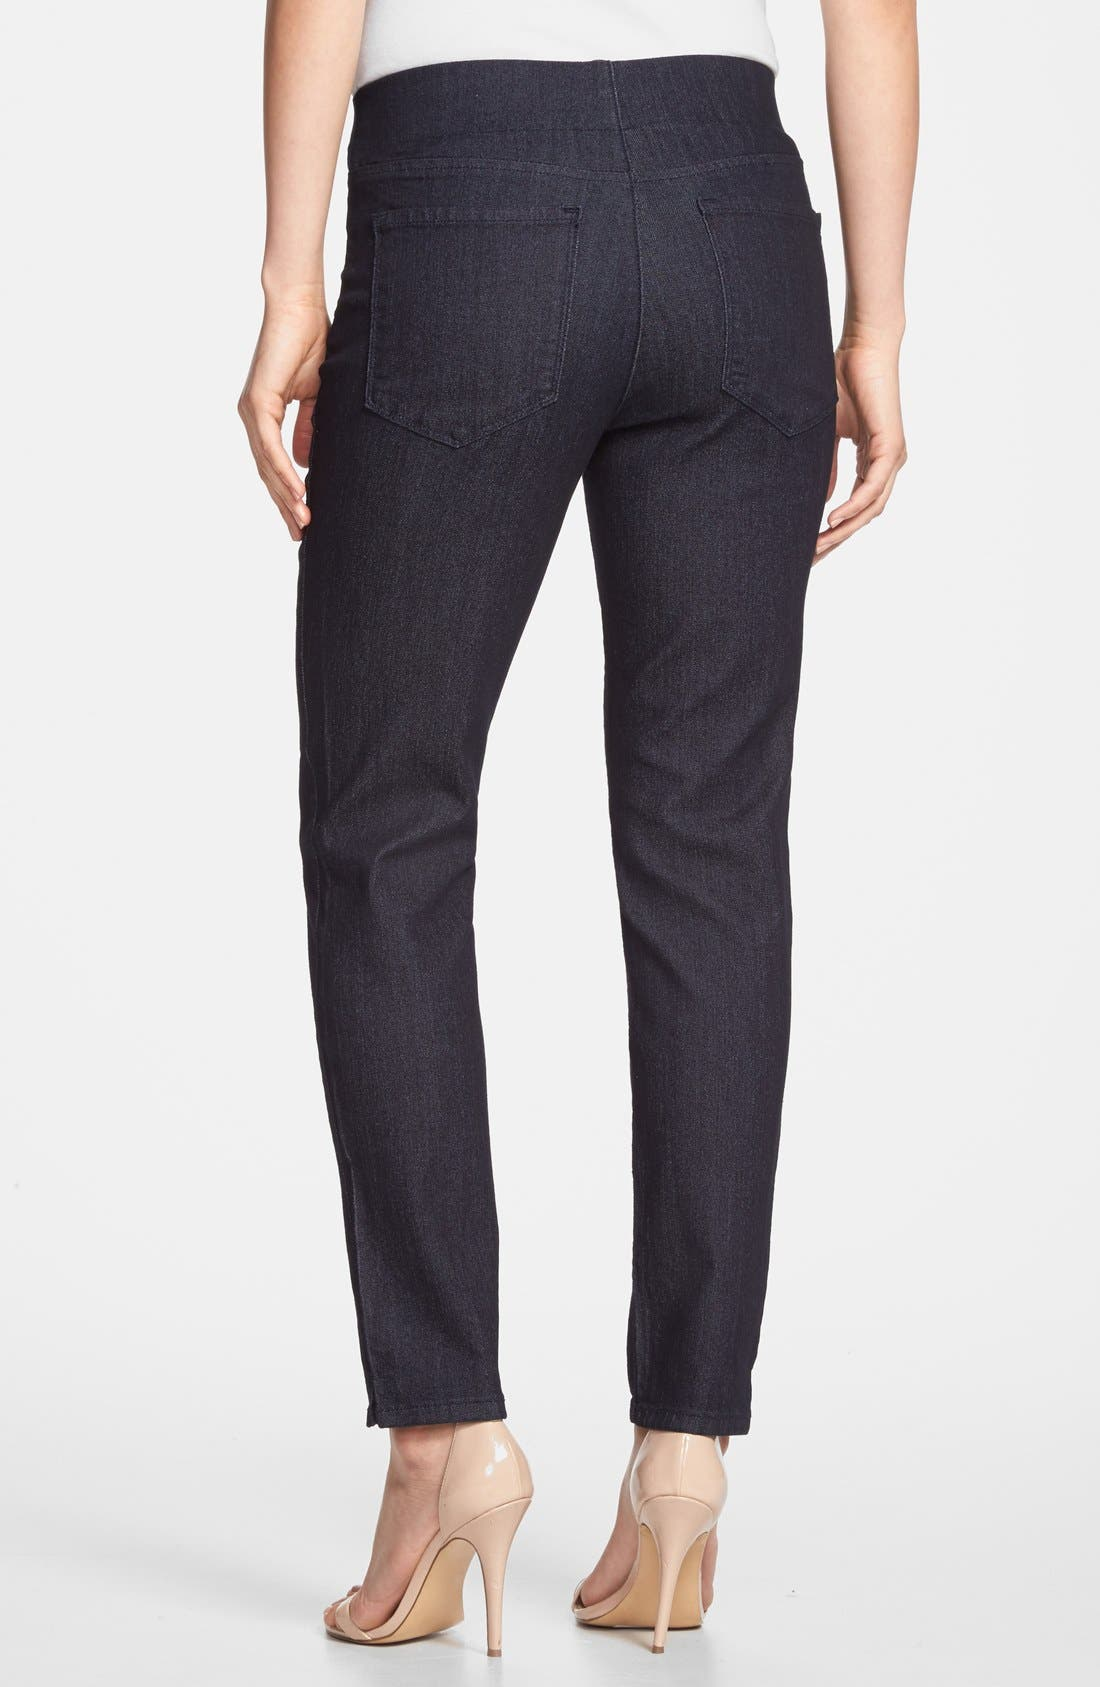 Alternate Image 2  - NYDJ 'Millie' Pull-On Stretch Fitted Ankle Jeans (Dark Enzyme) (Regular & Petite)